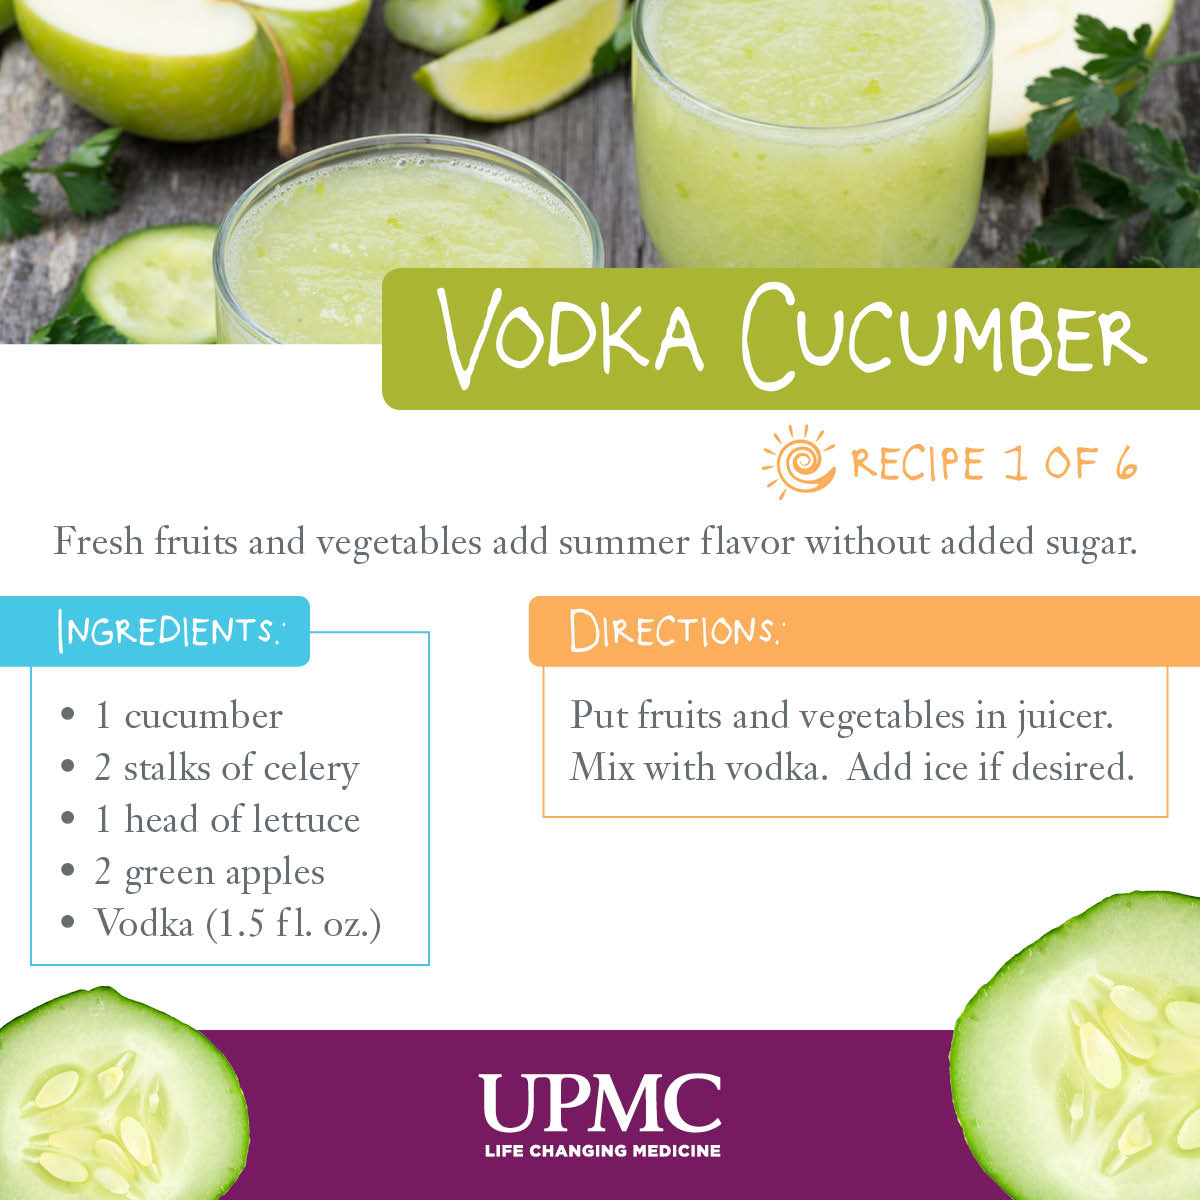 Try these healthier versions of summer drink recipes